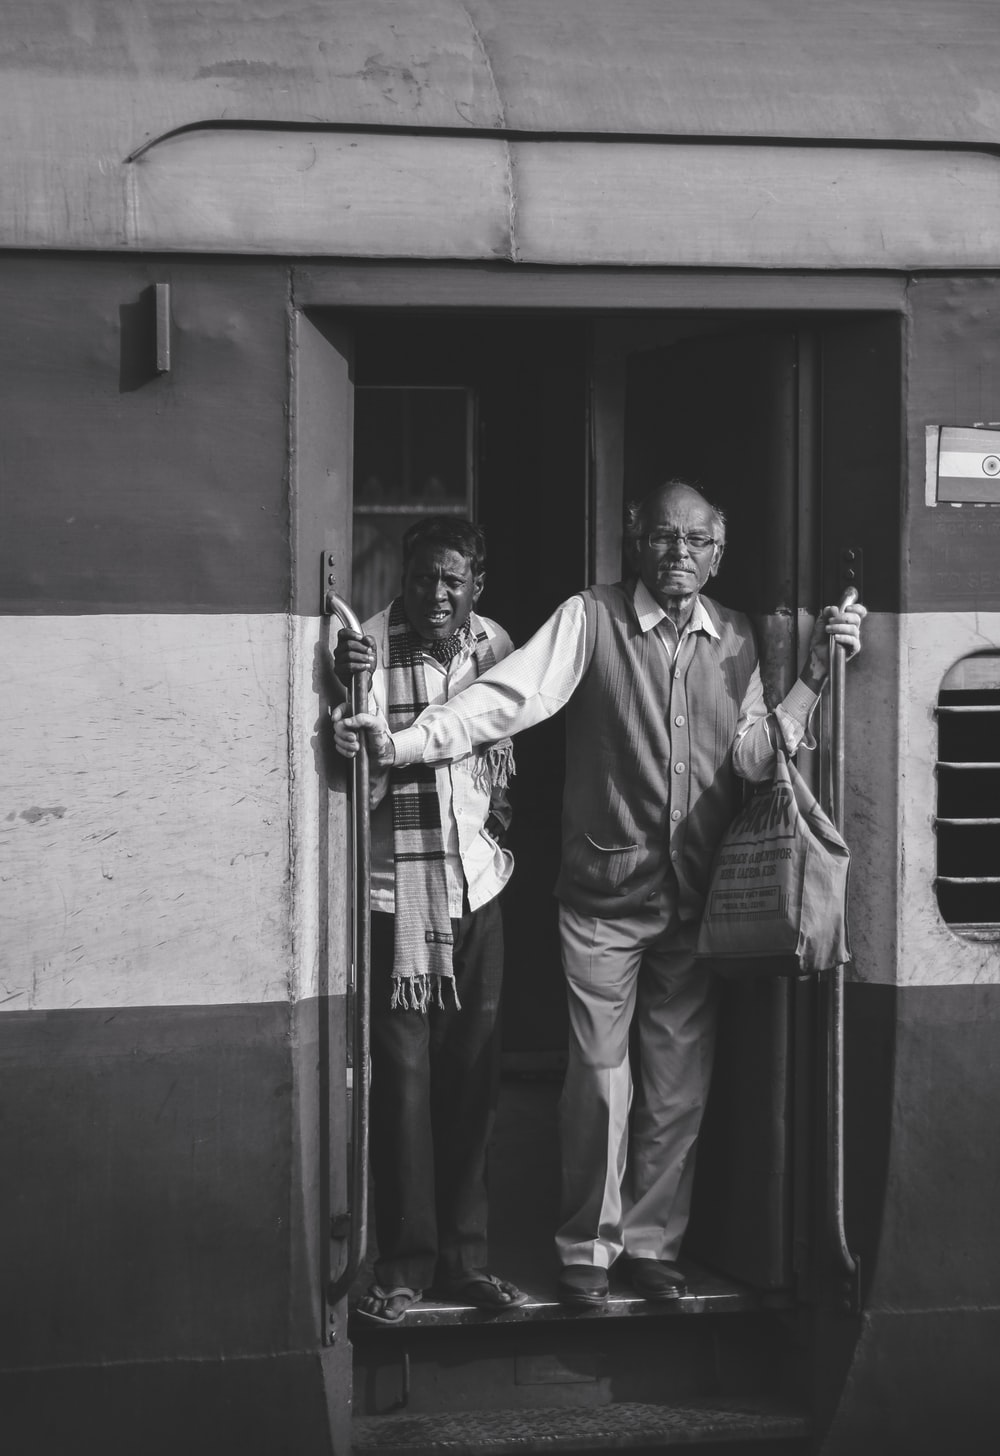 two men standing on the doorway of a train